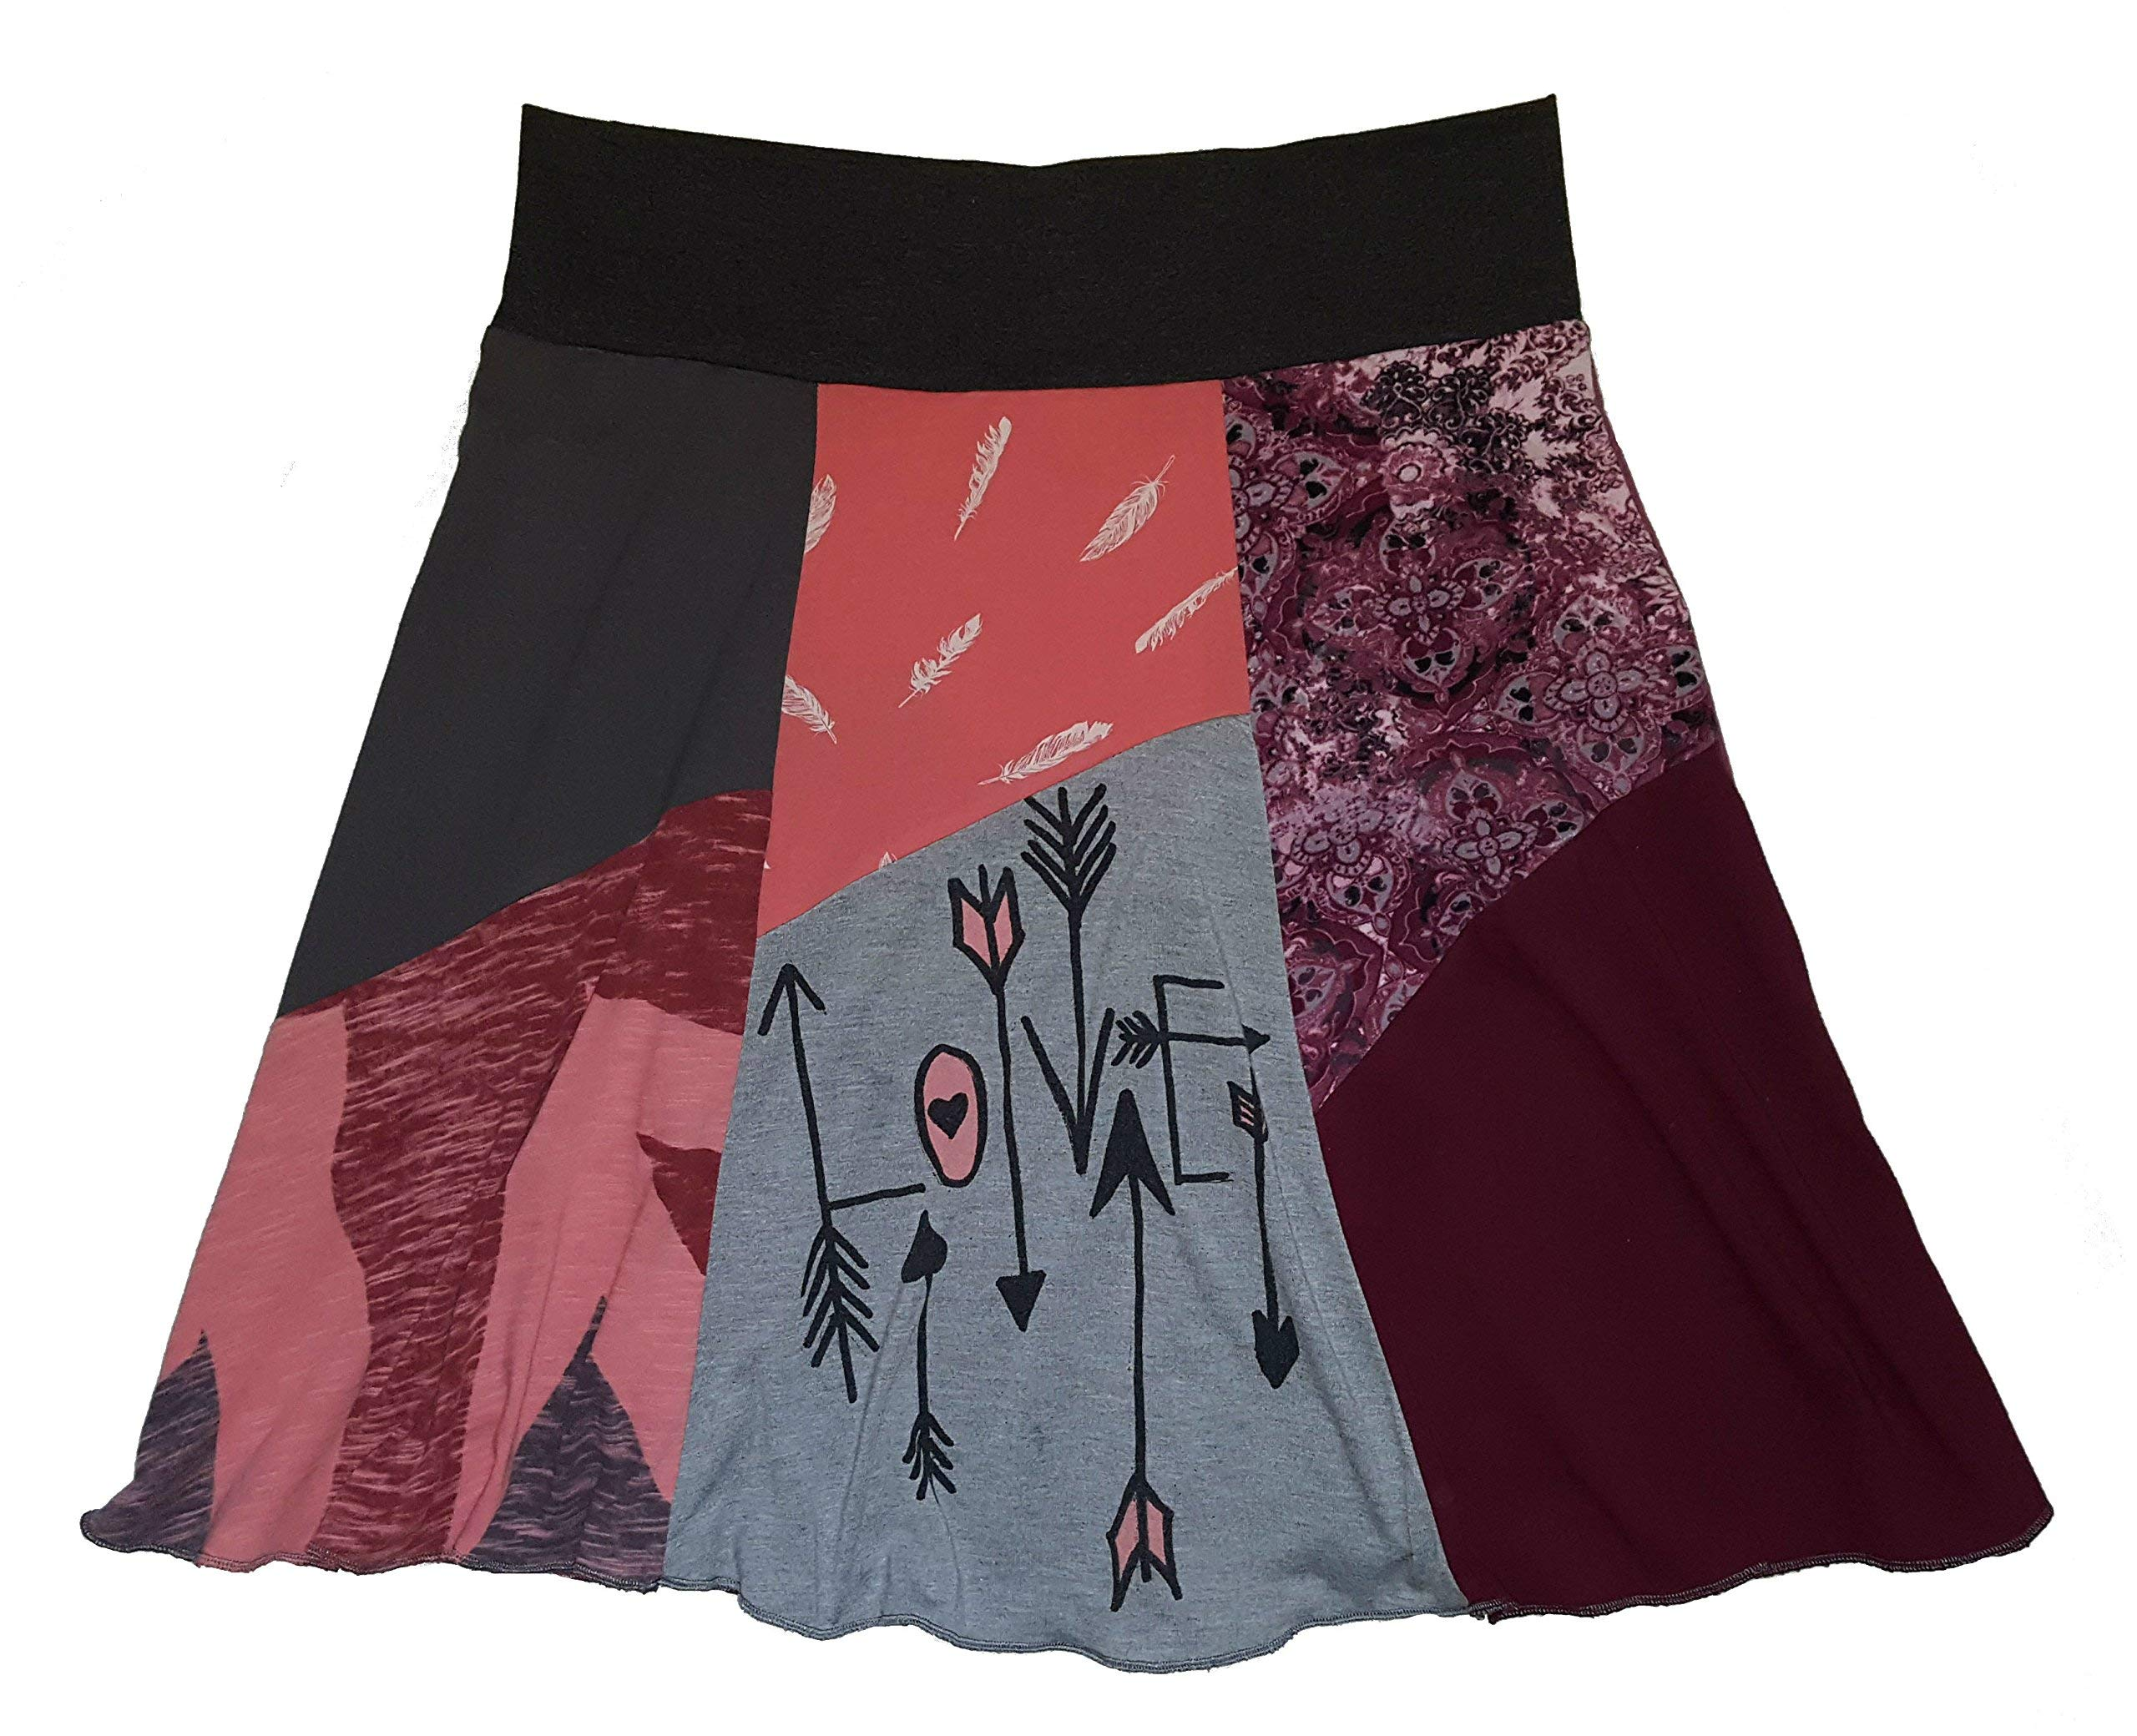 Cute Love Skirt for Women Large XL Upcycled One of a Kind T-Shirt Skirt